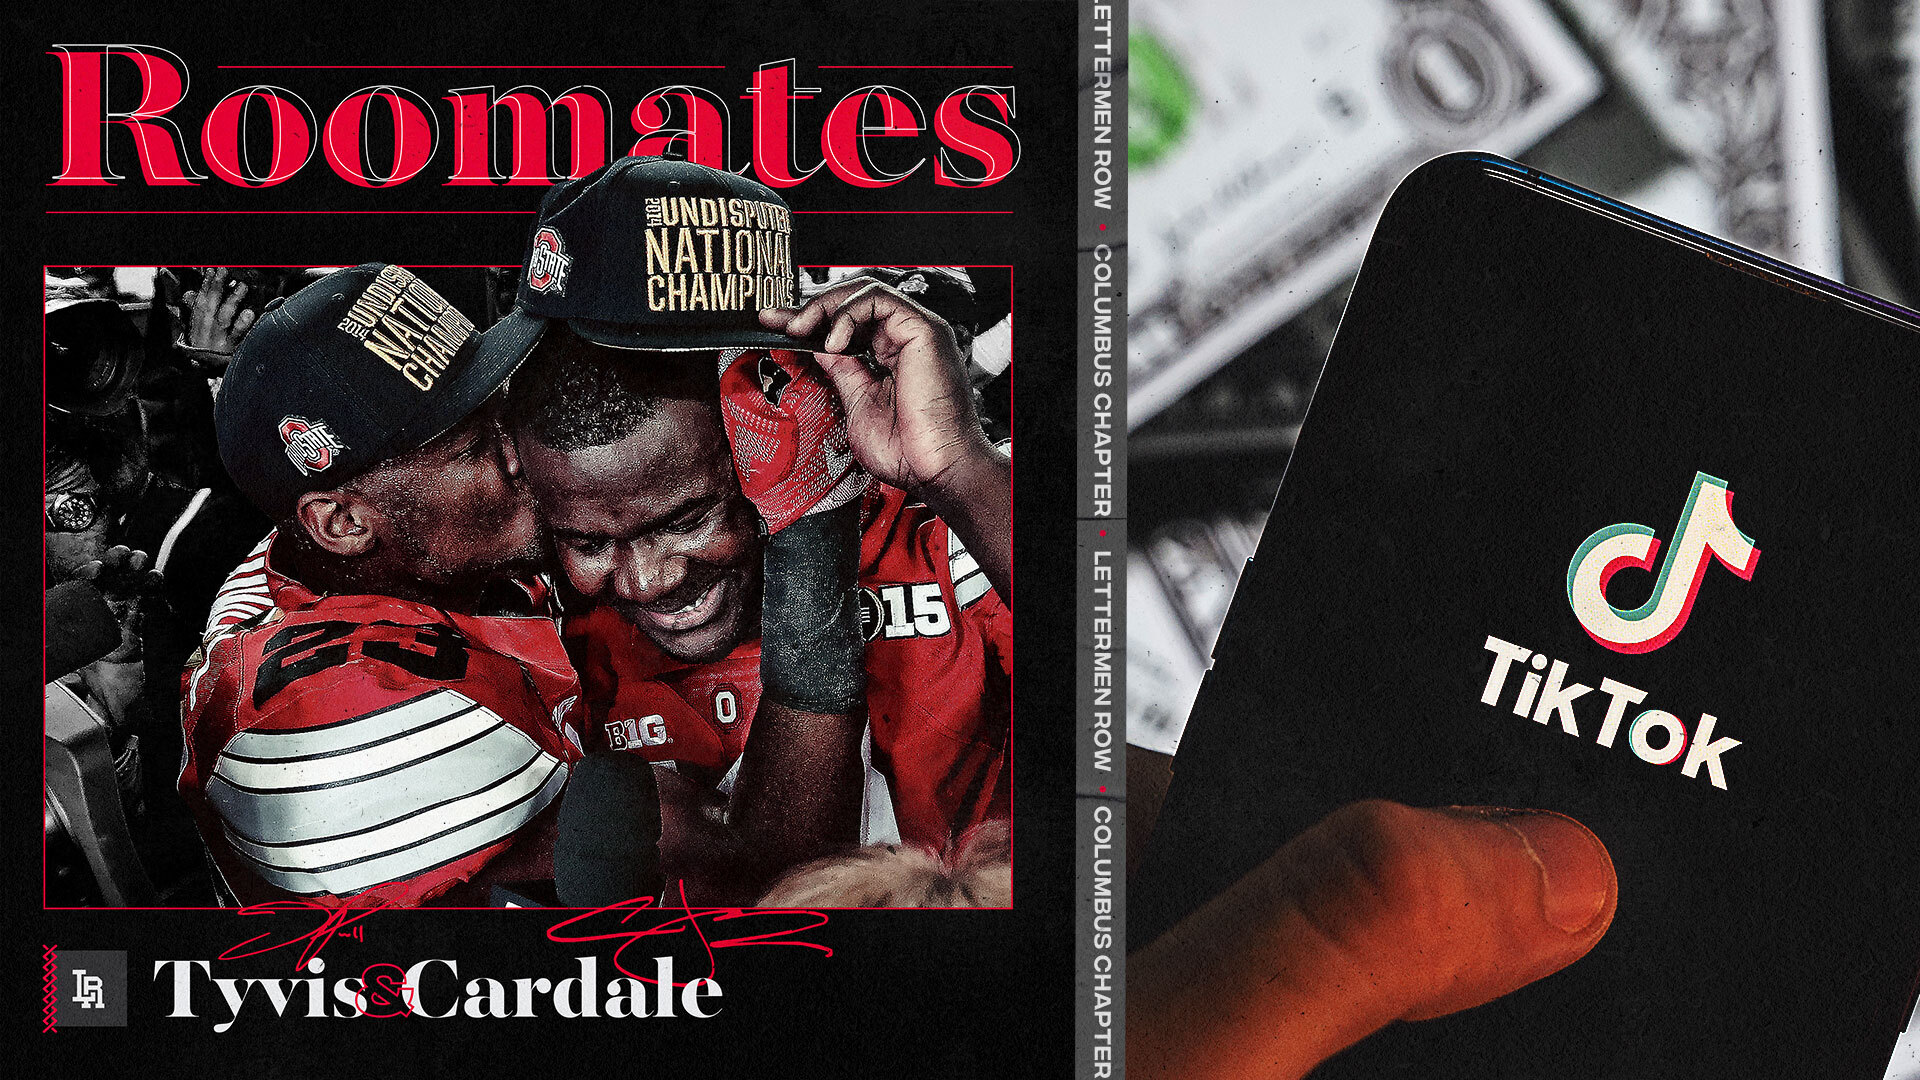 Roomates_Template-cover-july-1